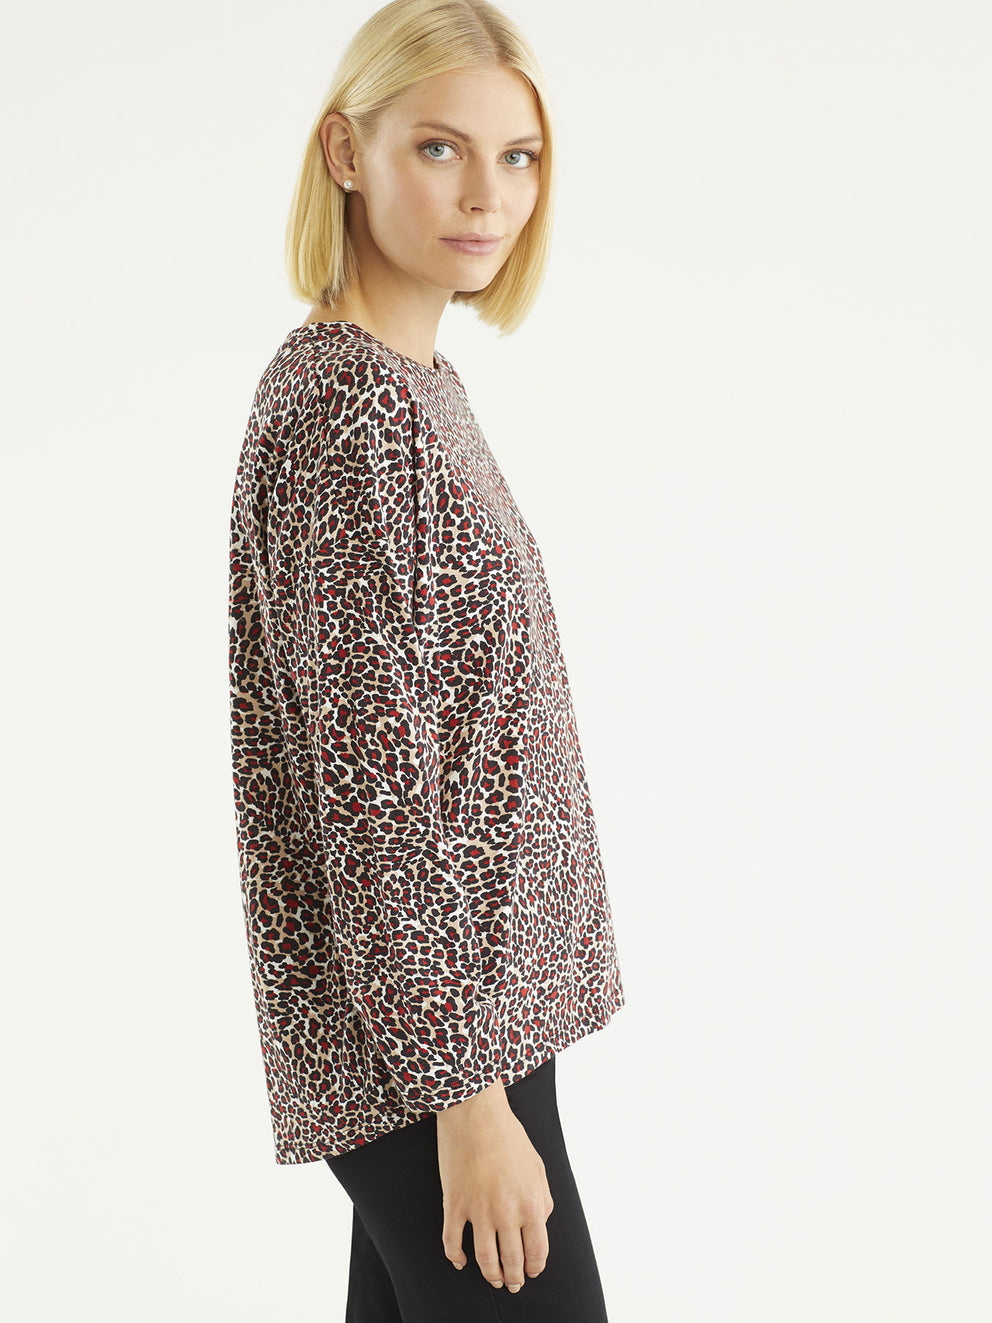 The Jones New York Leopard Print Scrunch Sleeve Jersey in color Mini Leopard Print - Image Position 2